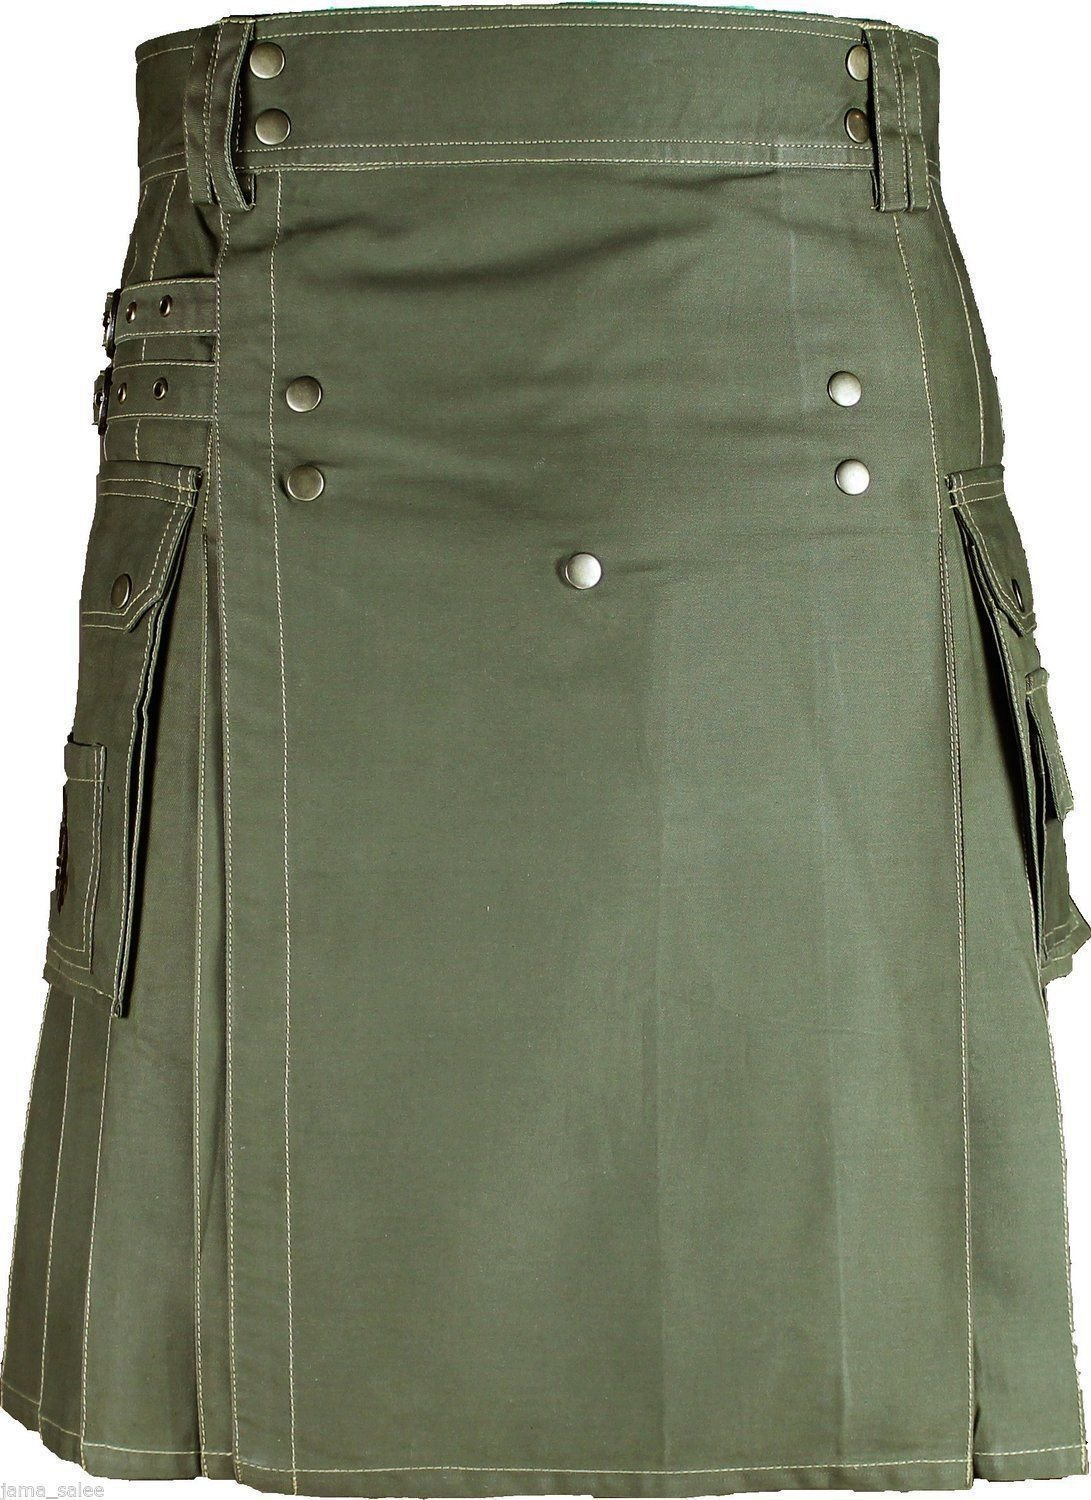 New 38 Size Modern Olive Green Kilt Traditional Scottish Utility Cotton Kilt